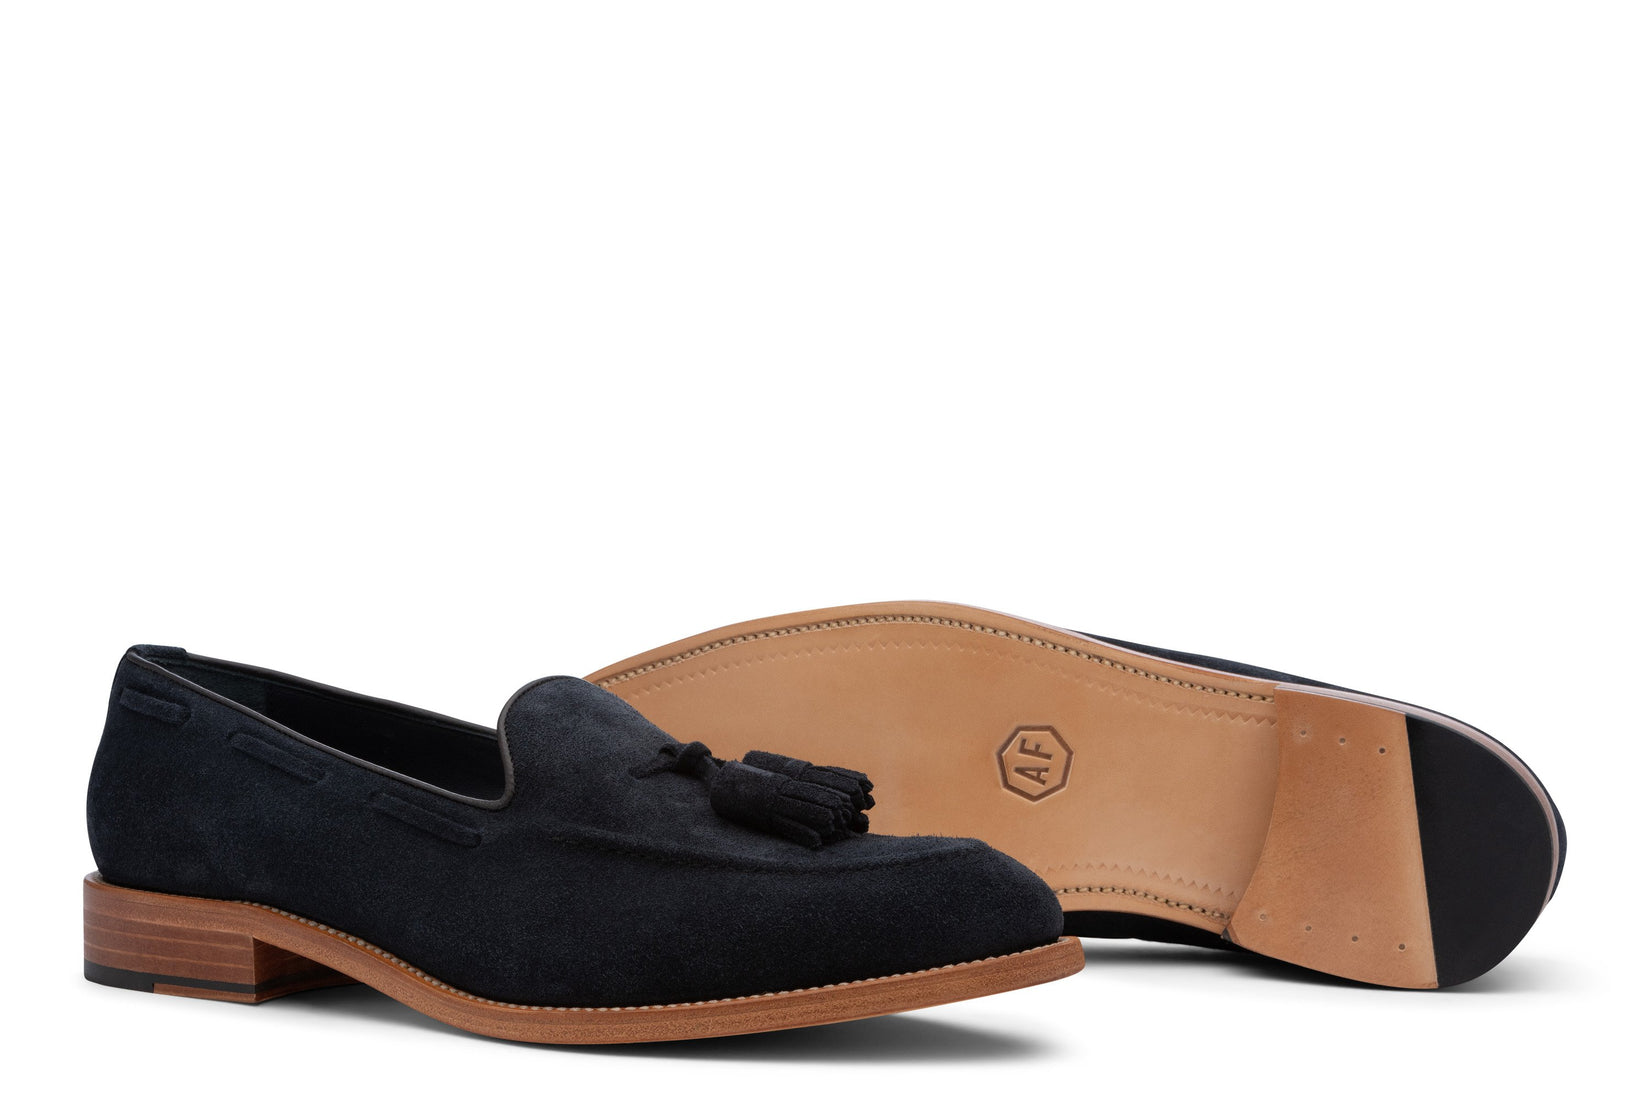 Thursday Tassel loafer in Navy (FINAL SALE)